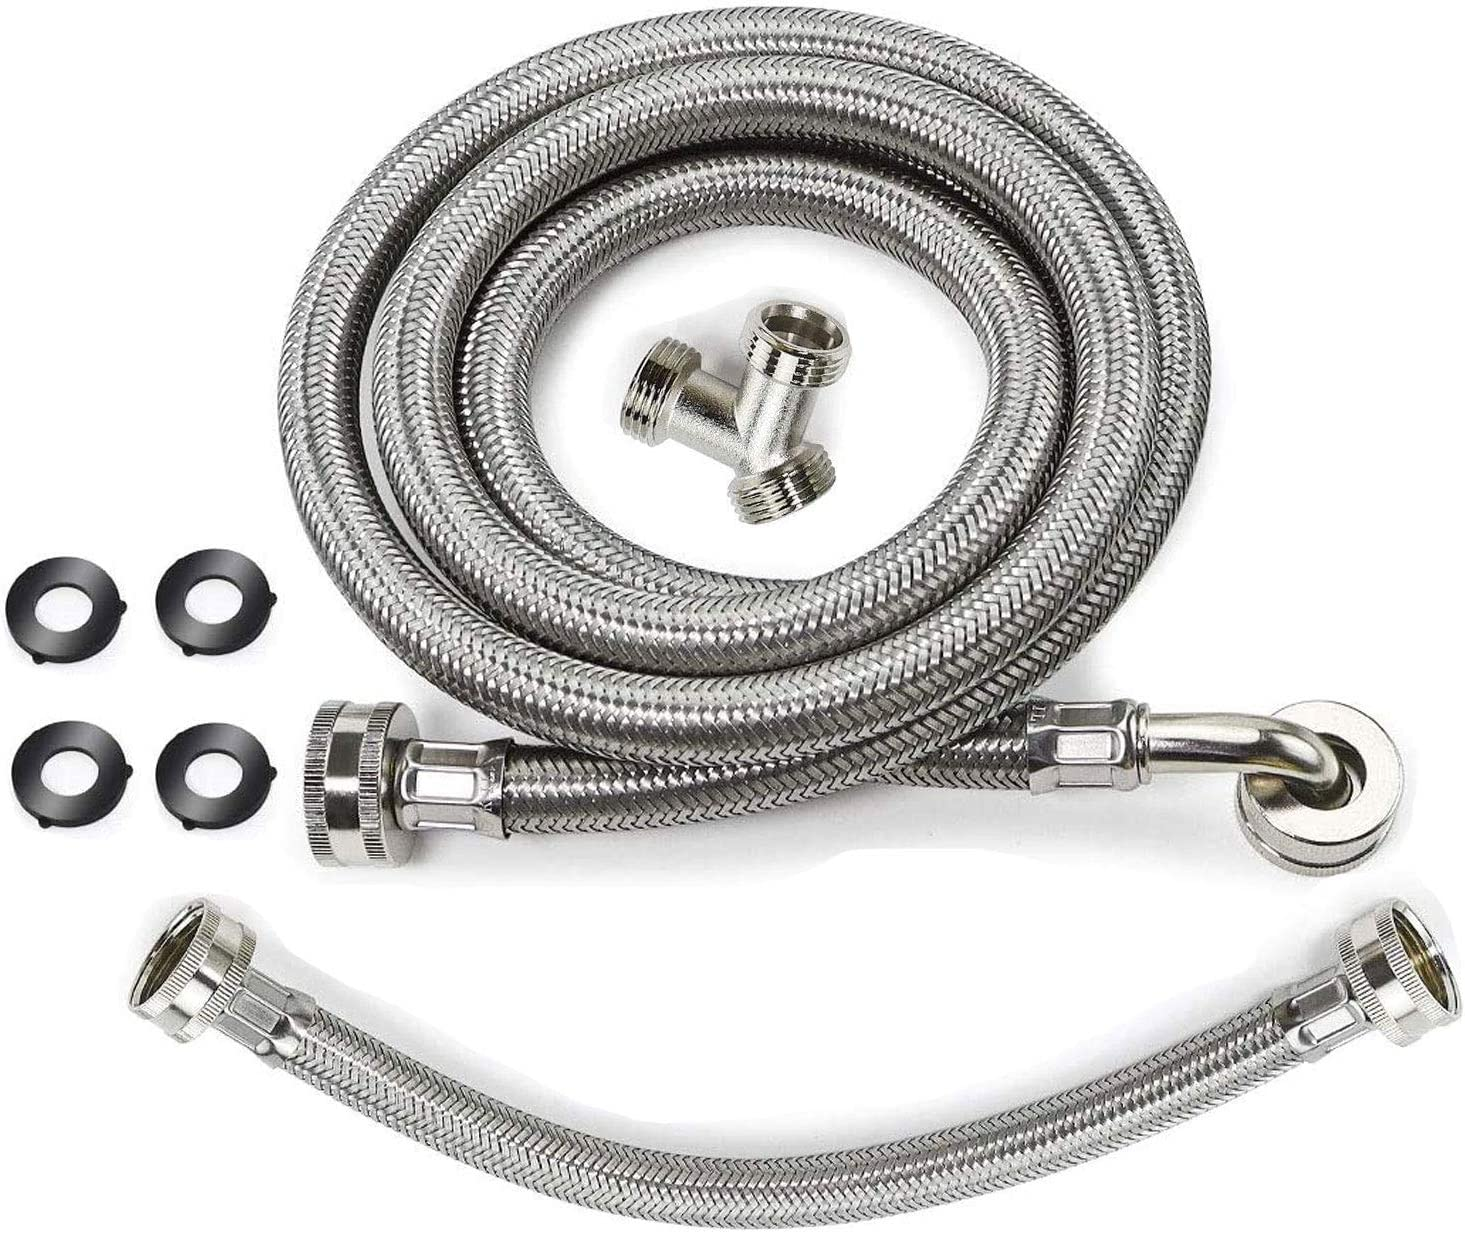 Sales Steam Dryer Miami Mall Hose Installation Kit Washer Stainless Steel Hoses -